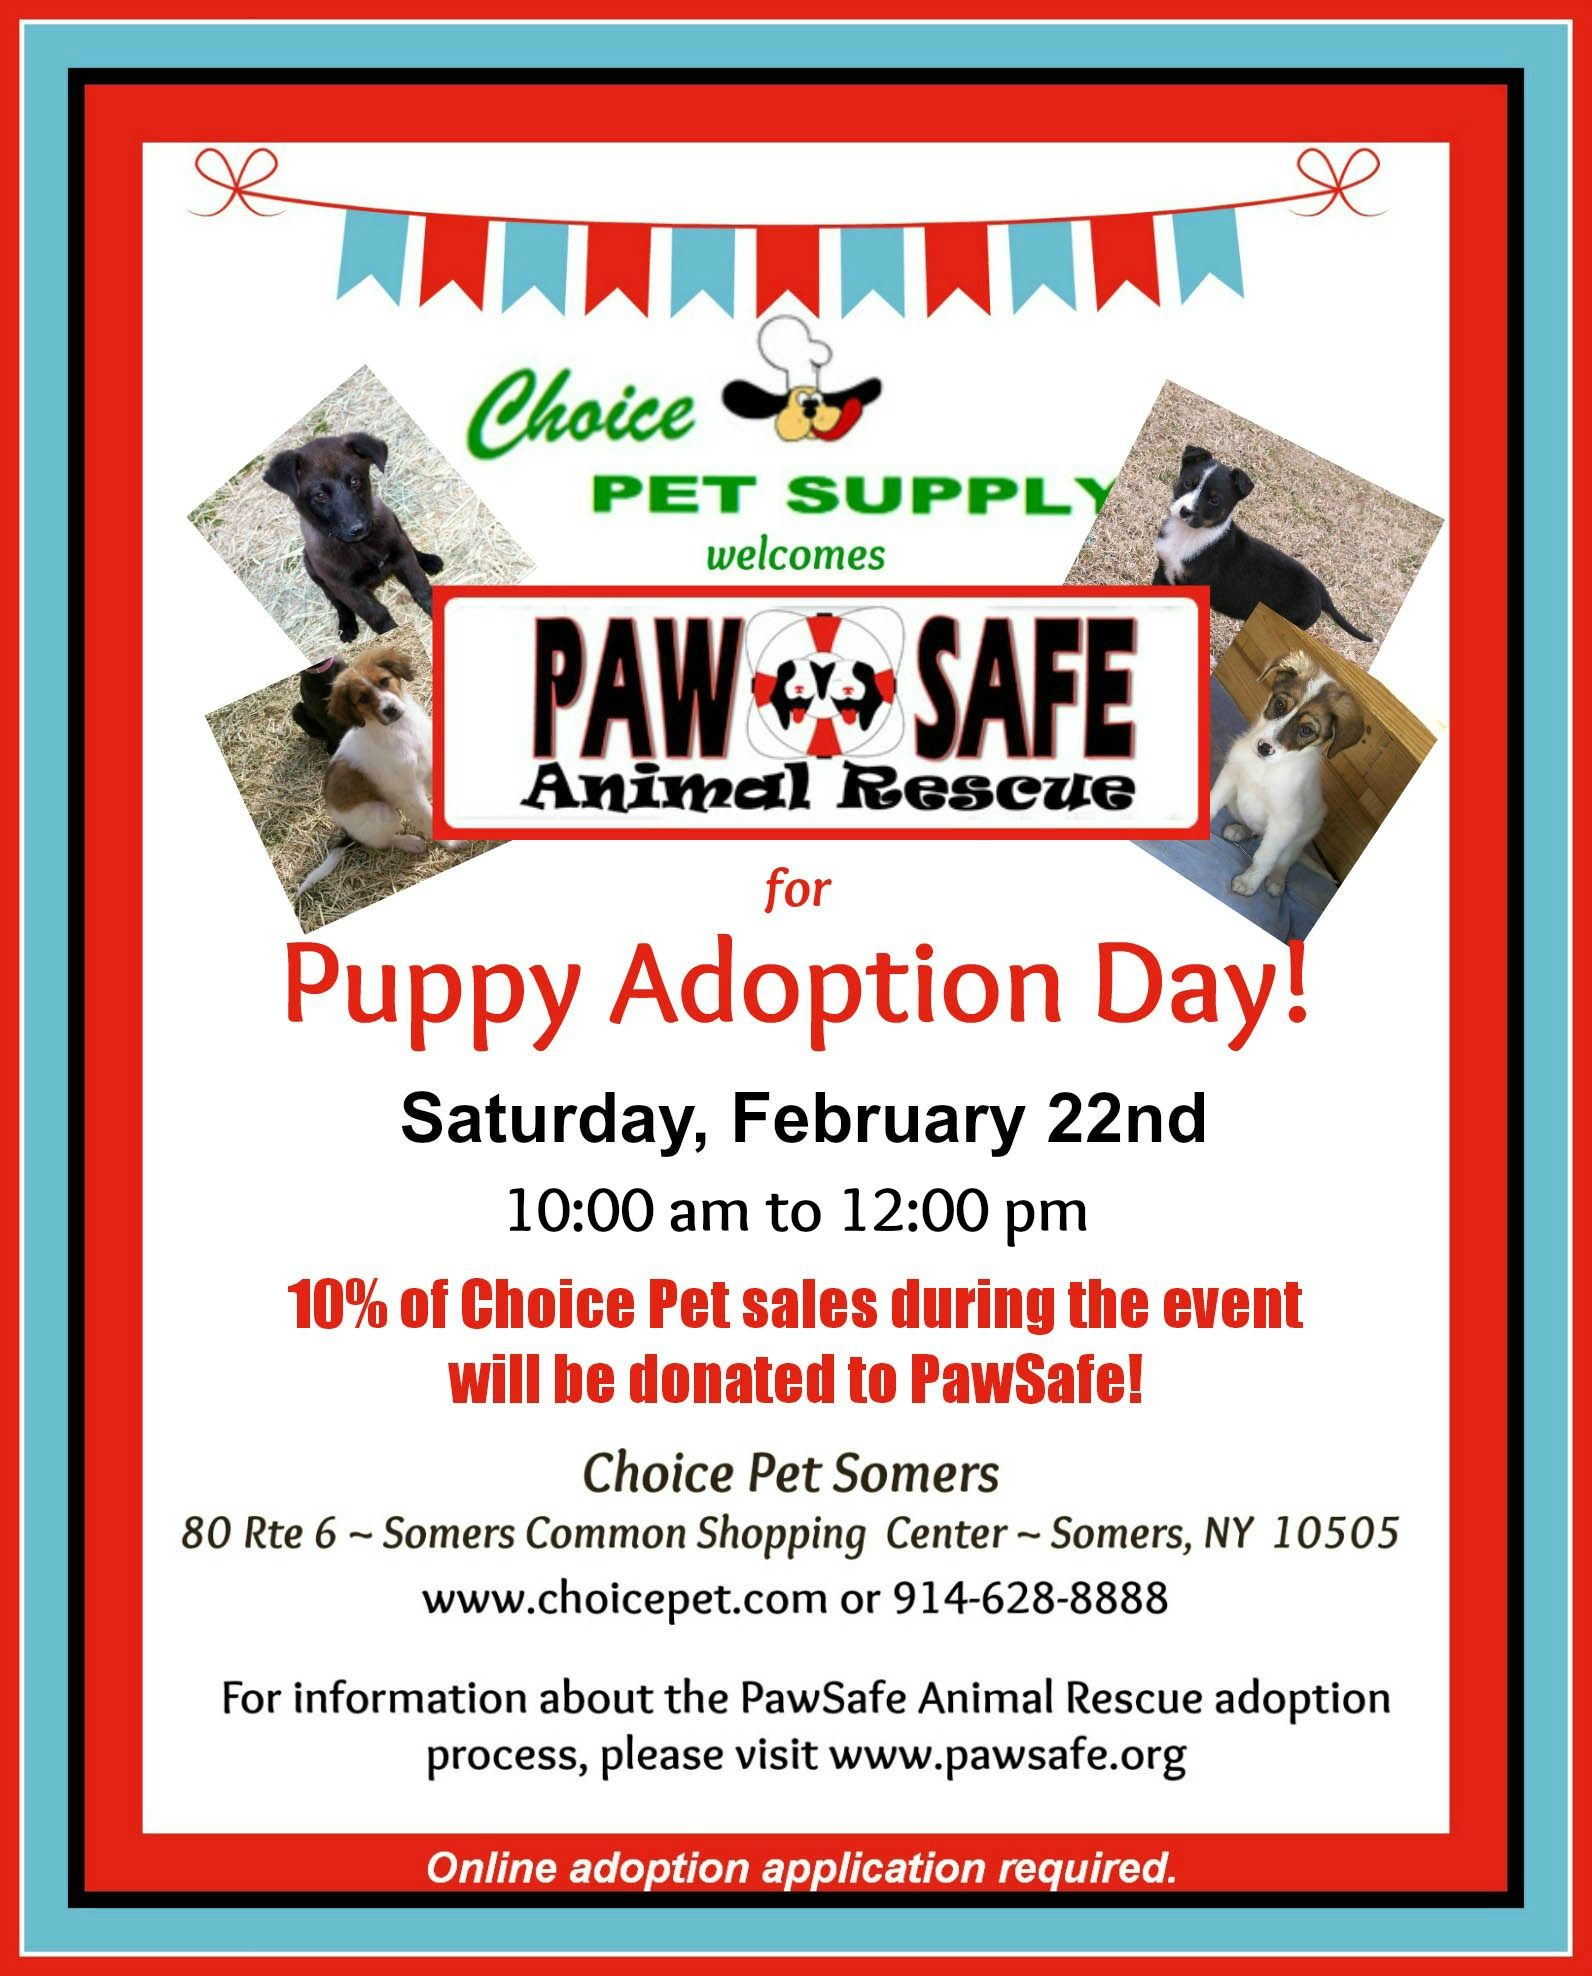 We Love Pawsafe With Images Puppy Adoption Adoption Day